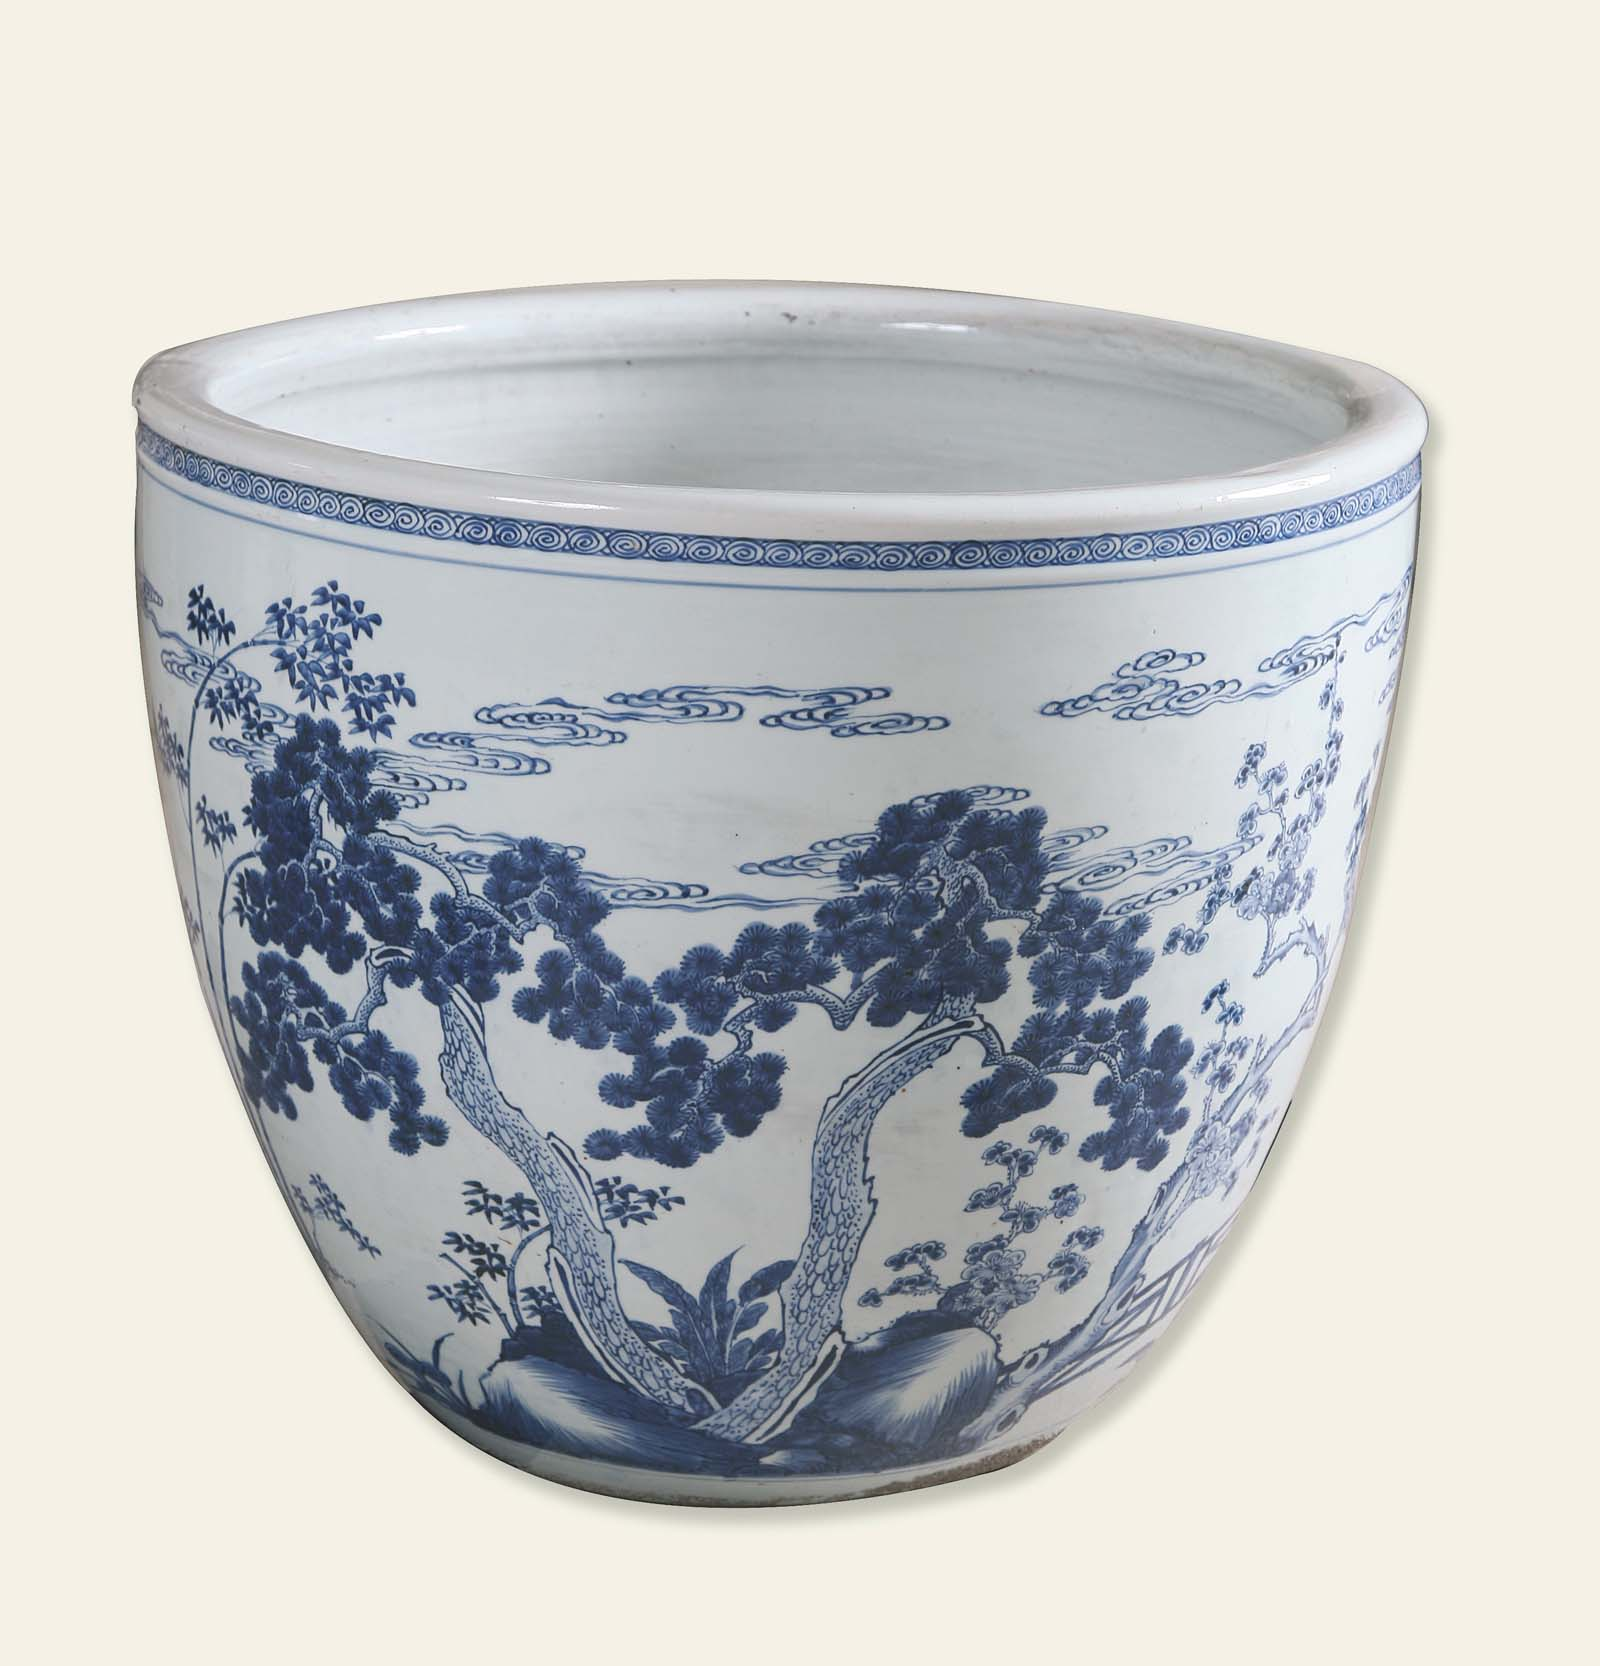 white Chinese ceramic pot with blue